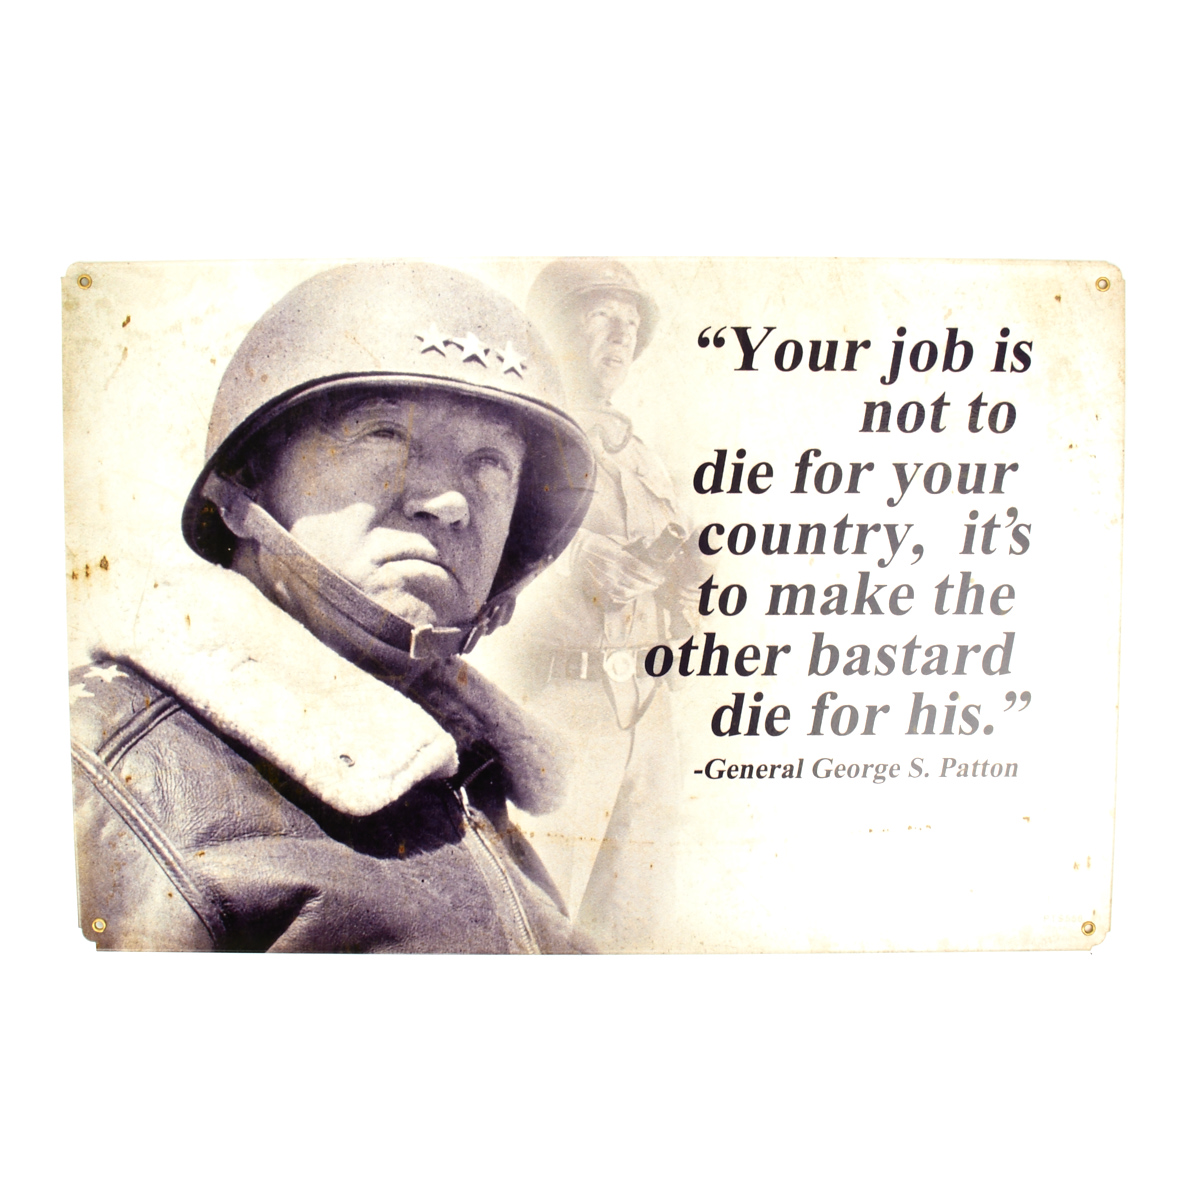 General George S Patton Quote Poster 13x19 inches B